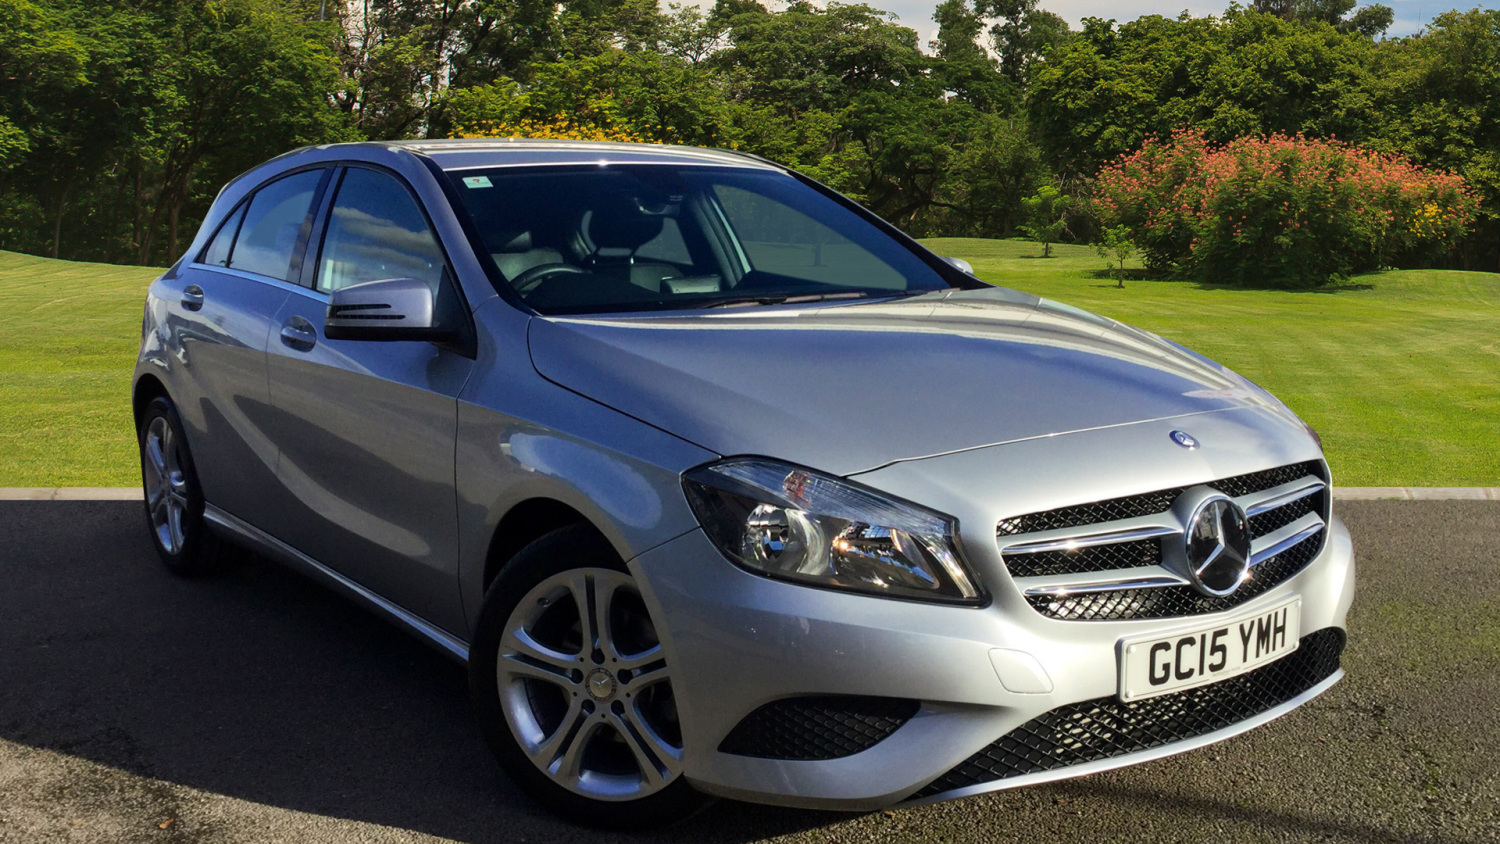 used mercedes benz a class a180 cdi sport edition 5dr auto diesel hatchback for sale in scotland. Black Bedroom Furniture Sets. Home Design Ideas